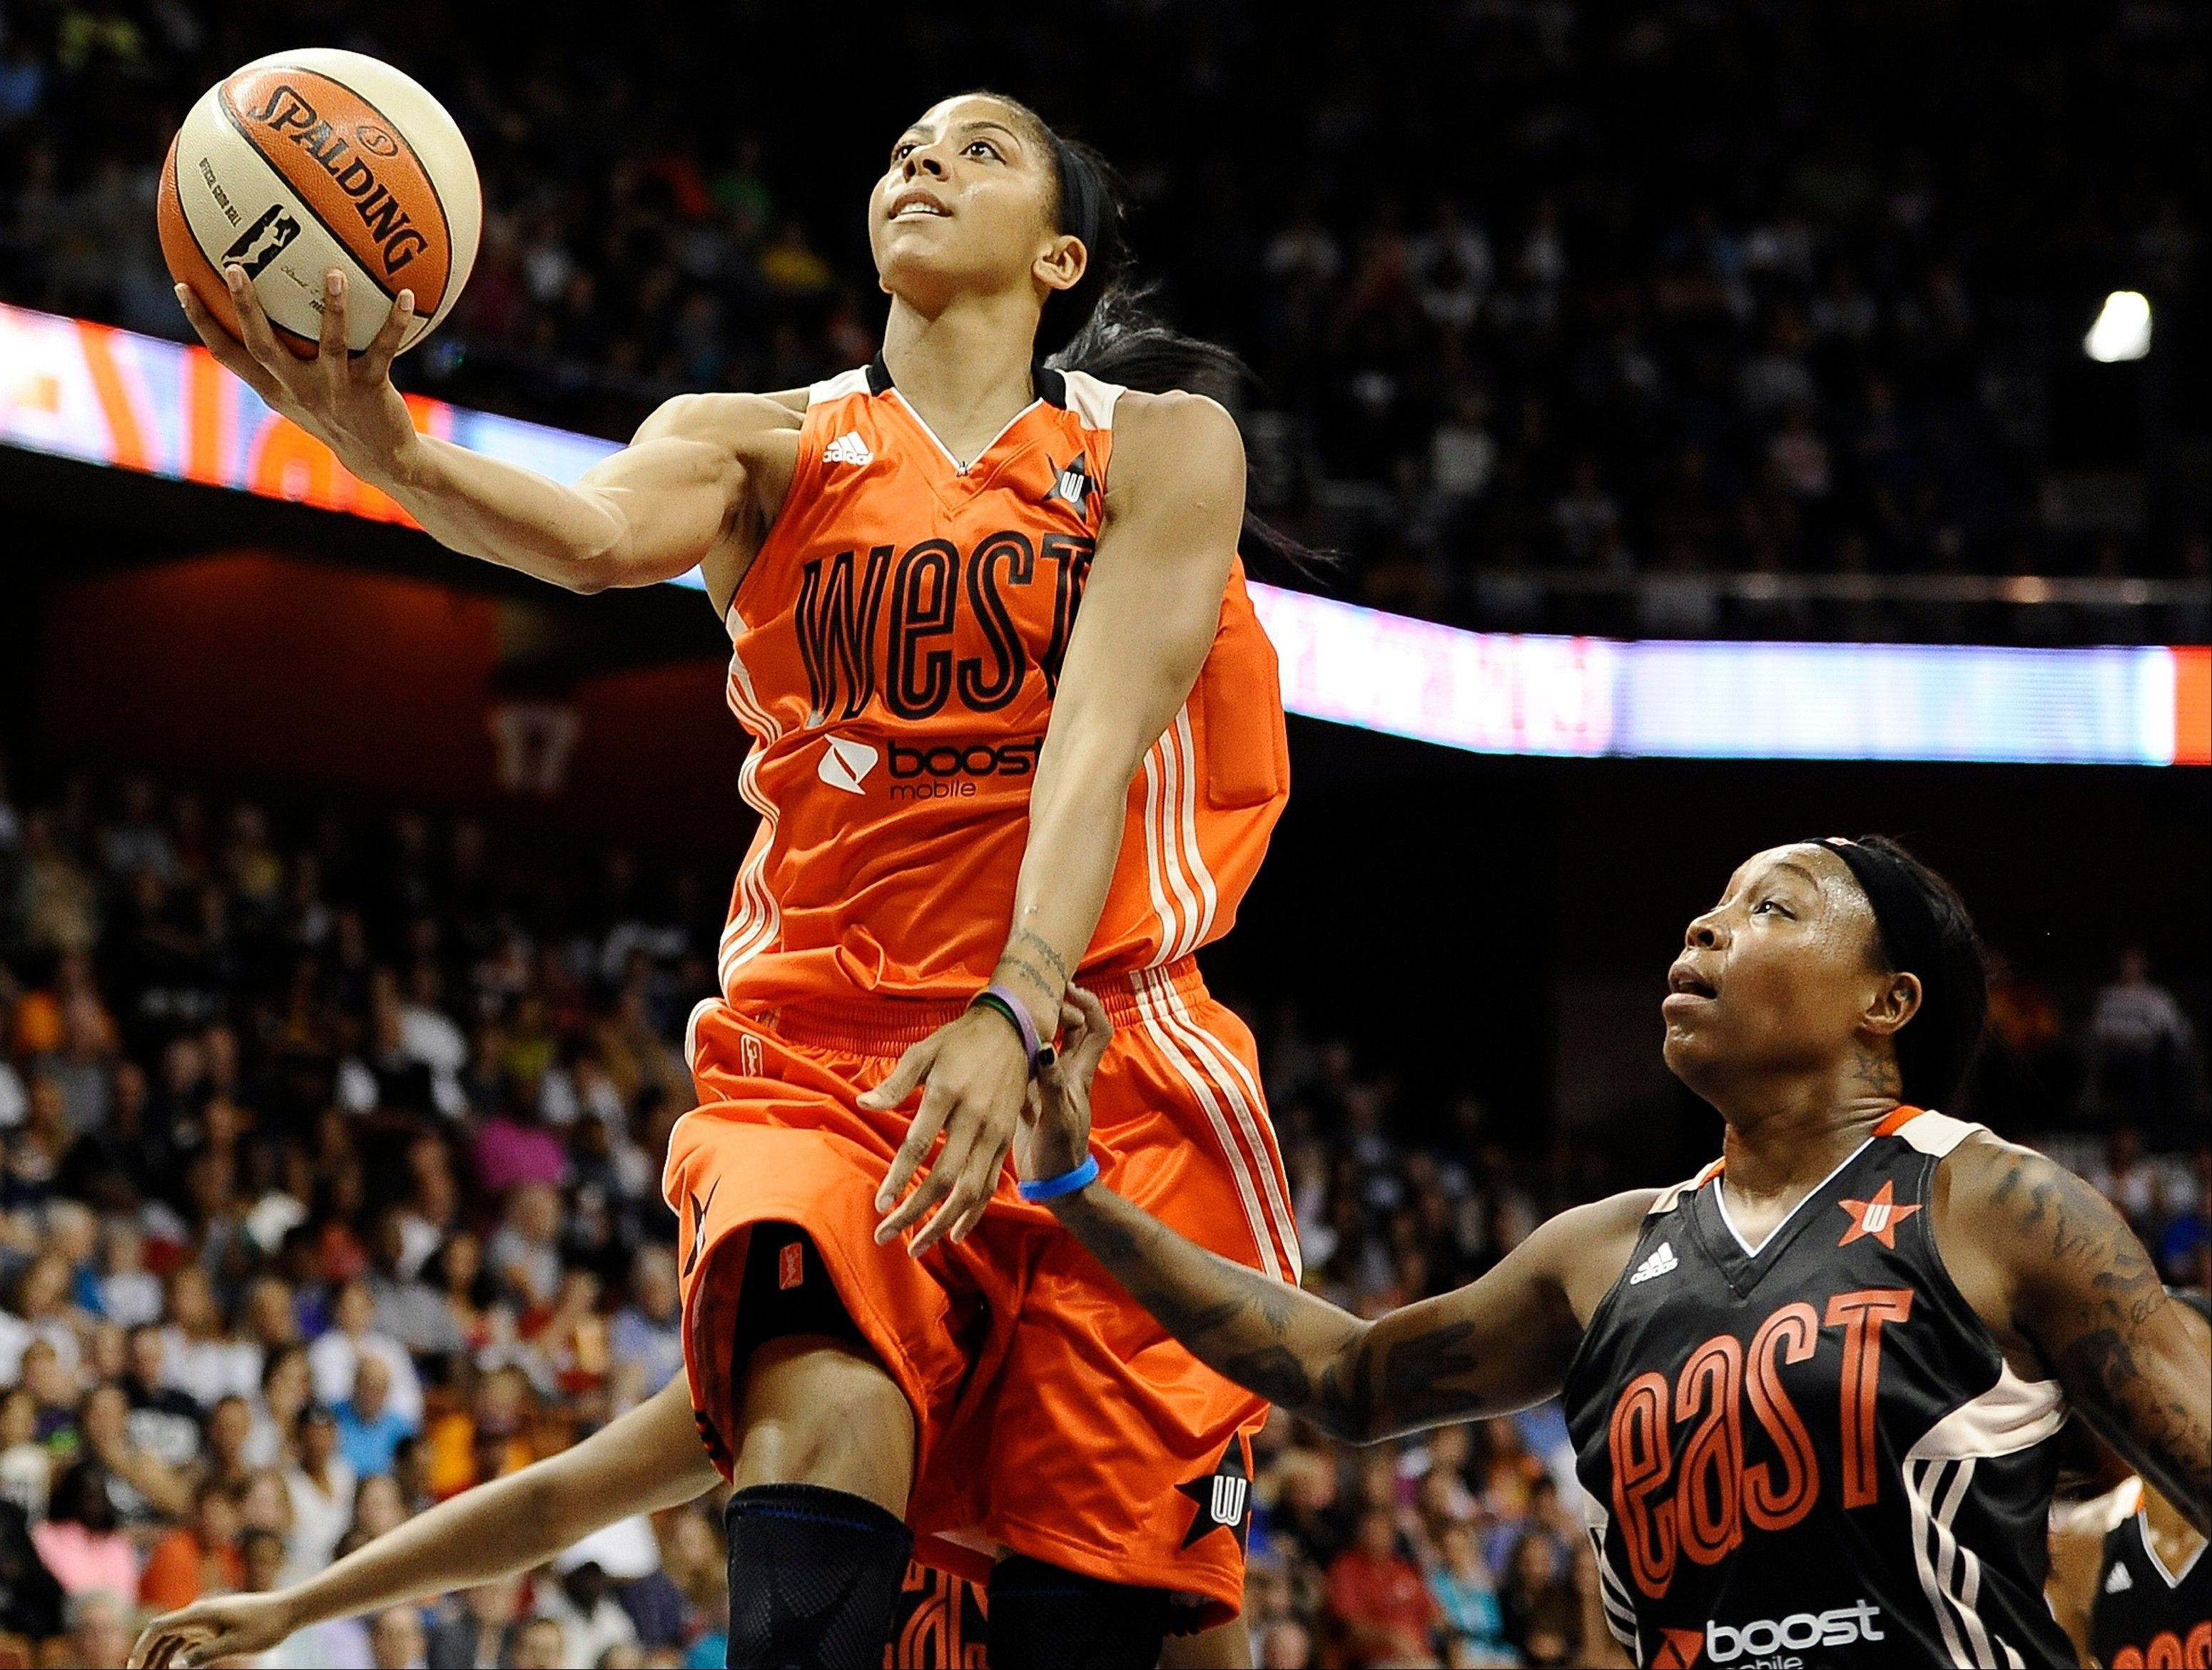 West's Candace Parker, of the Los Angeles Sparks, drives to the basket while guarded by East's Cappie Pondexter, of the New York Liberty, during the first half of the WNBA All-Star basketball game in Uncasville, Conn., Saturday, July 27, 2013. (AP Photo/Jessica Hill)